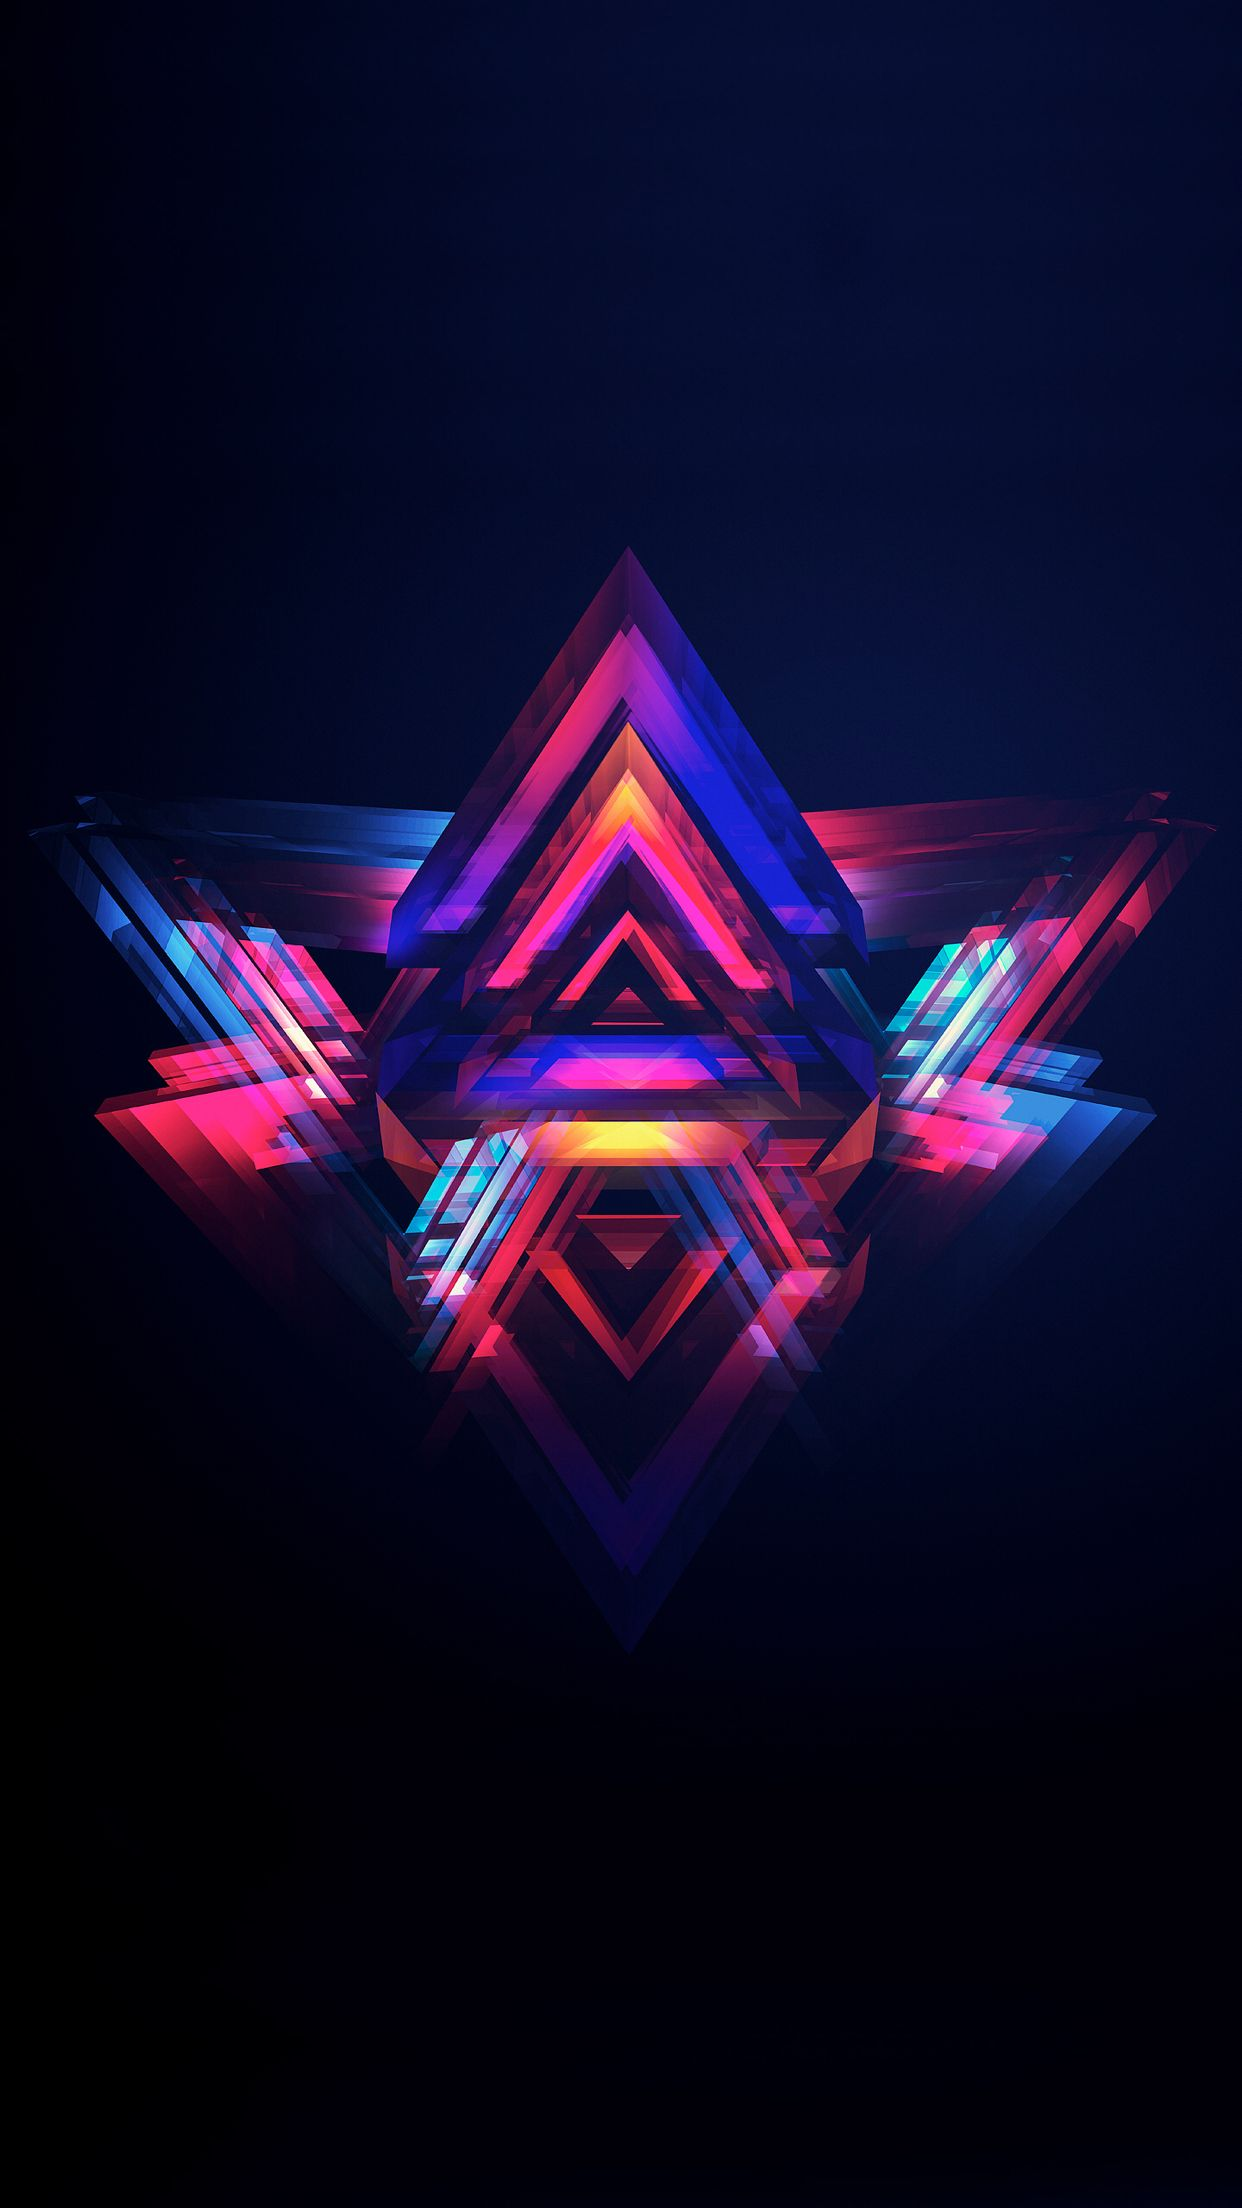 Wallpaper iphone edm - Free Abstract Pyramids Phone Wallpaper By Create And Share Your Own Ringtones Videos Themes And Cell Phone Wallpapers With Your Friends